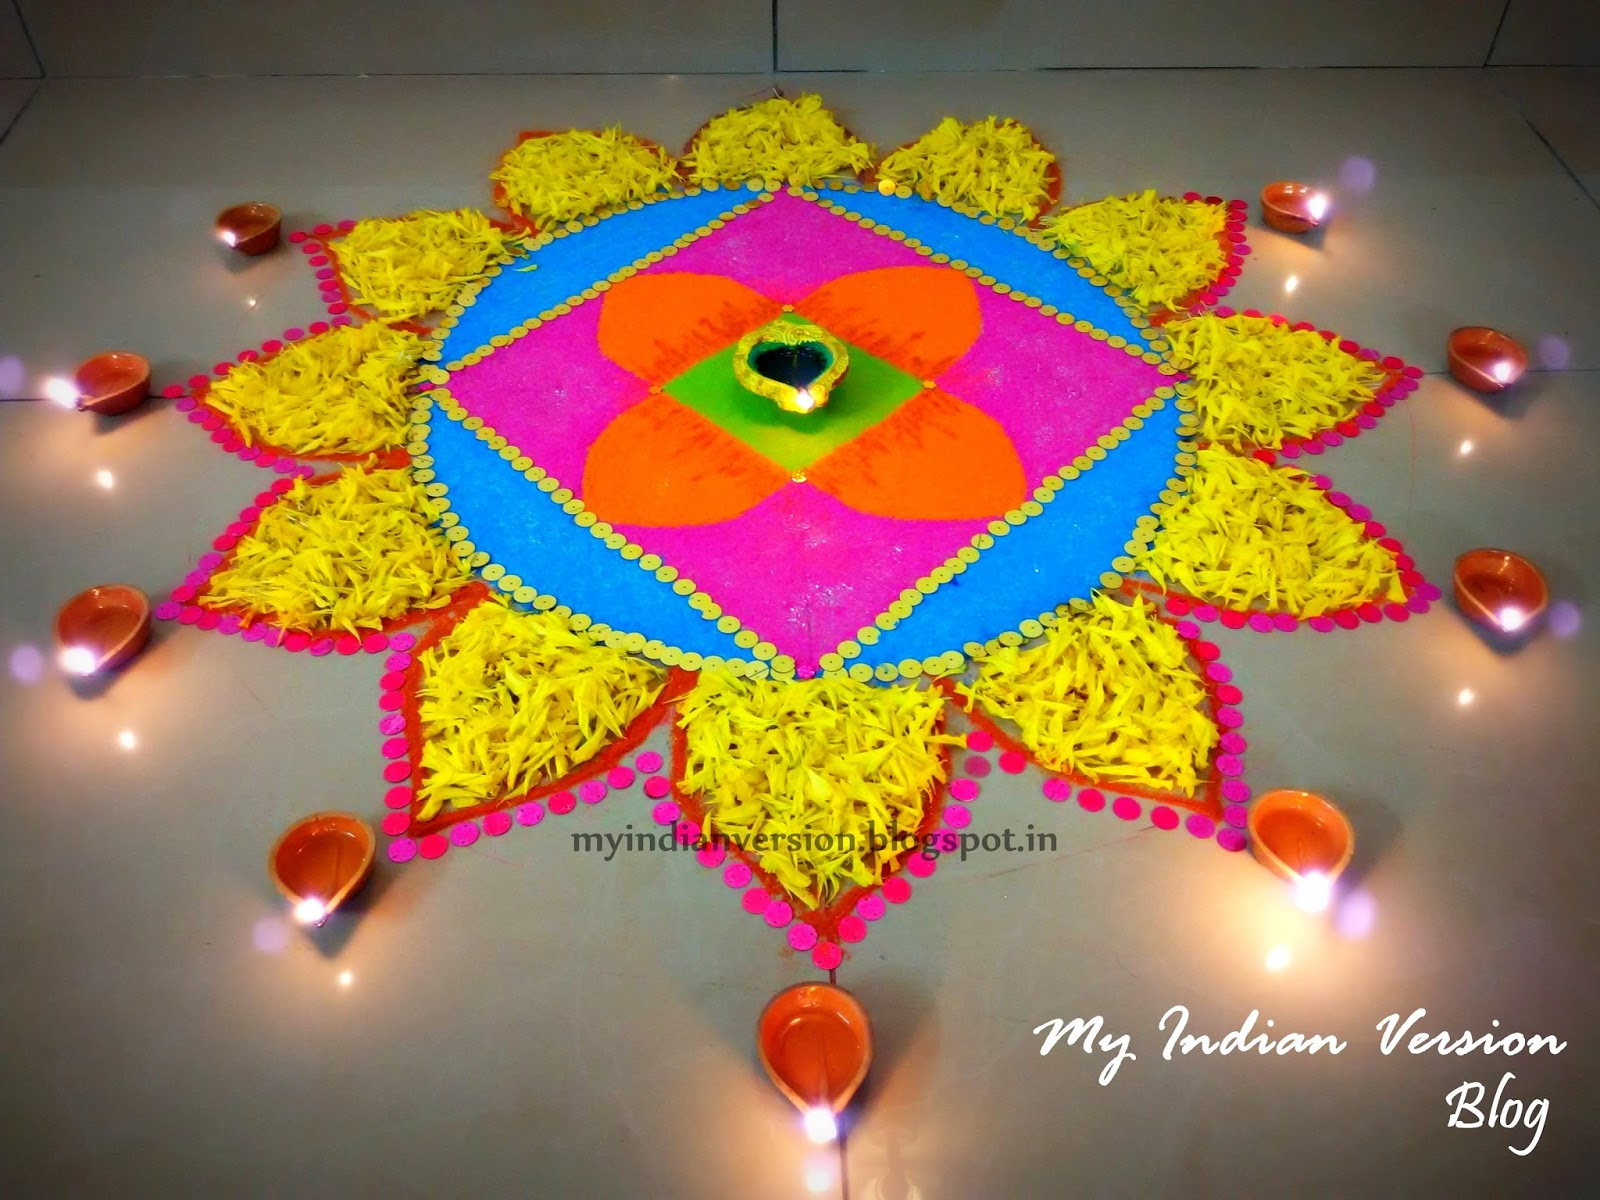 My indian version diwali festival decorations at my home for Indoor diwali decoration